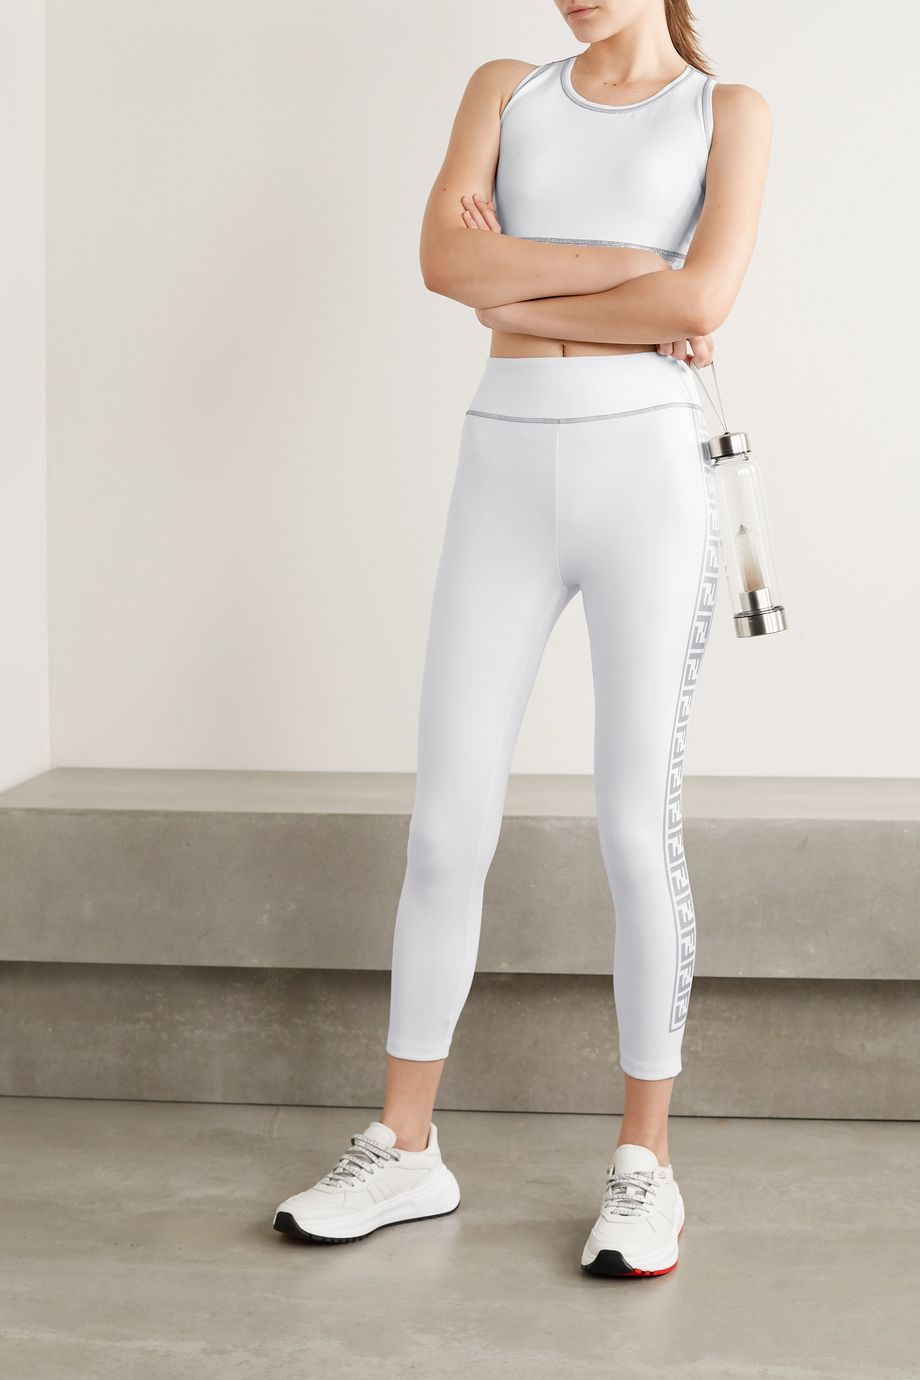 Fendi Rama printed stretch leggings